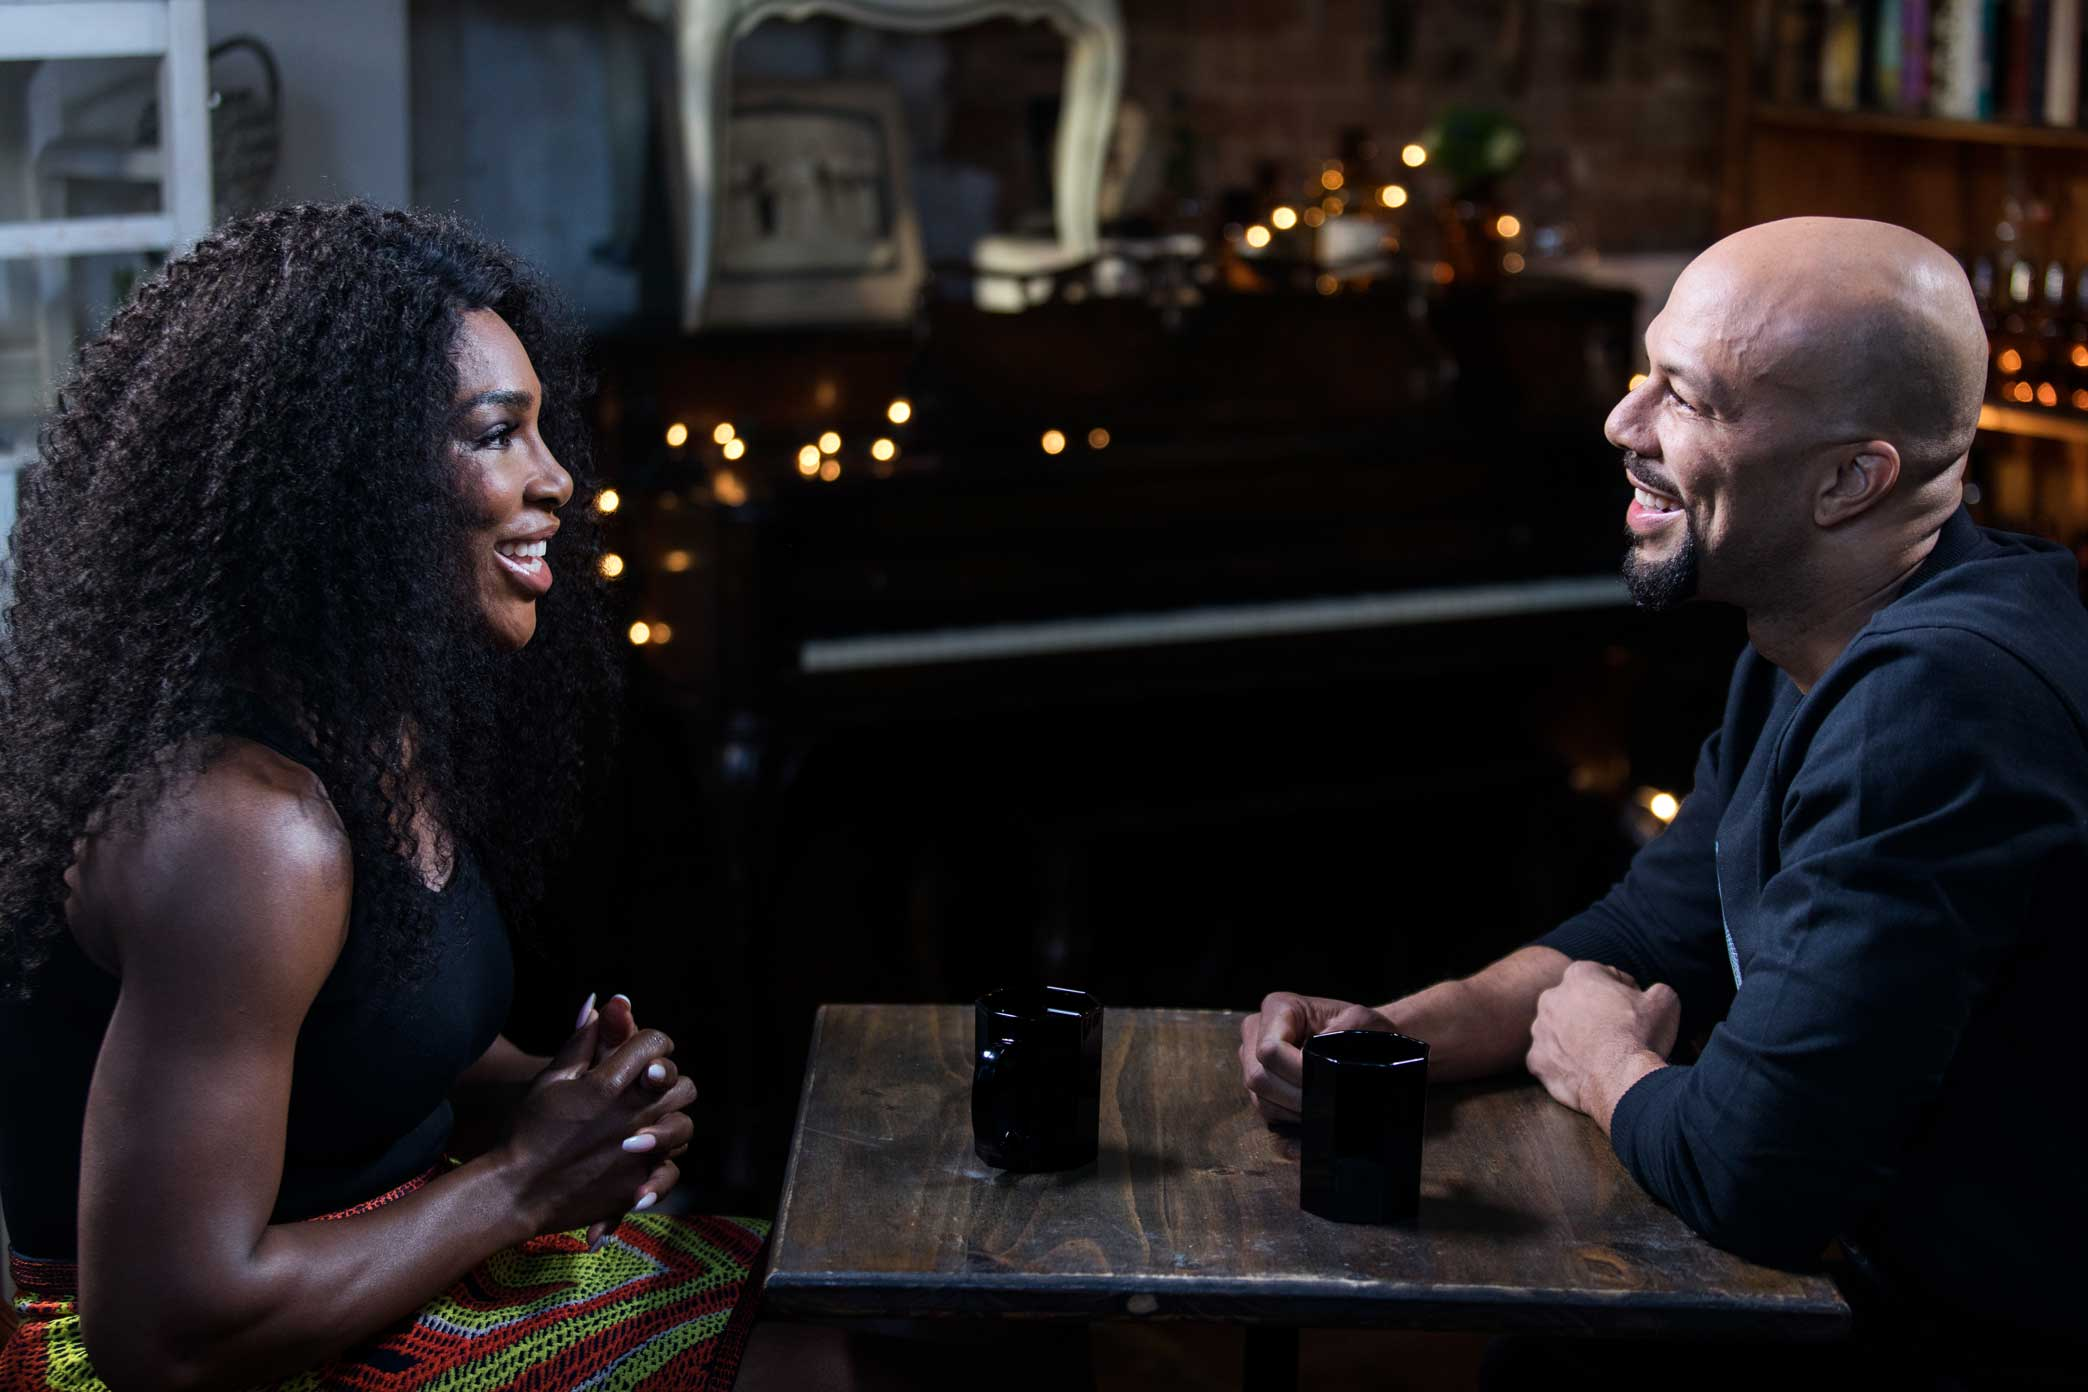 Rapper, actor and activist Common interviewed Serena Williams for The Undefeated at Urban Vintage cafe in Clinton Hill Brooklyn, New York.